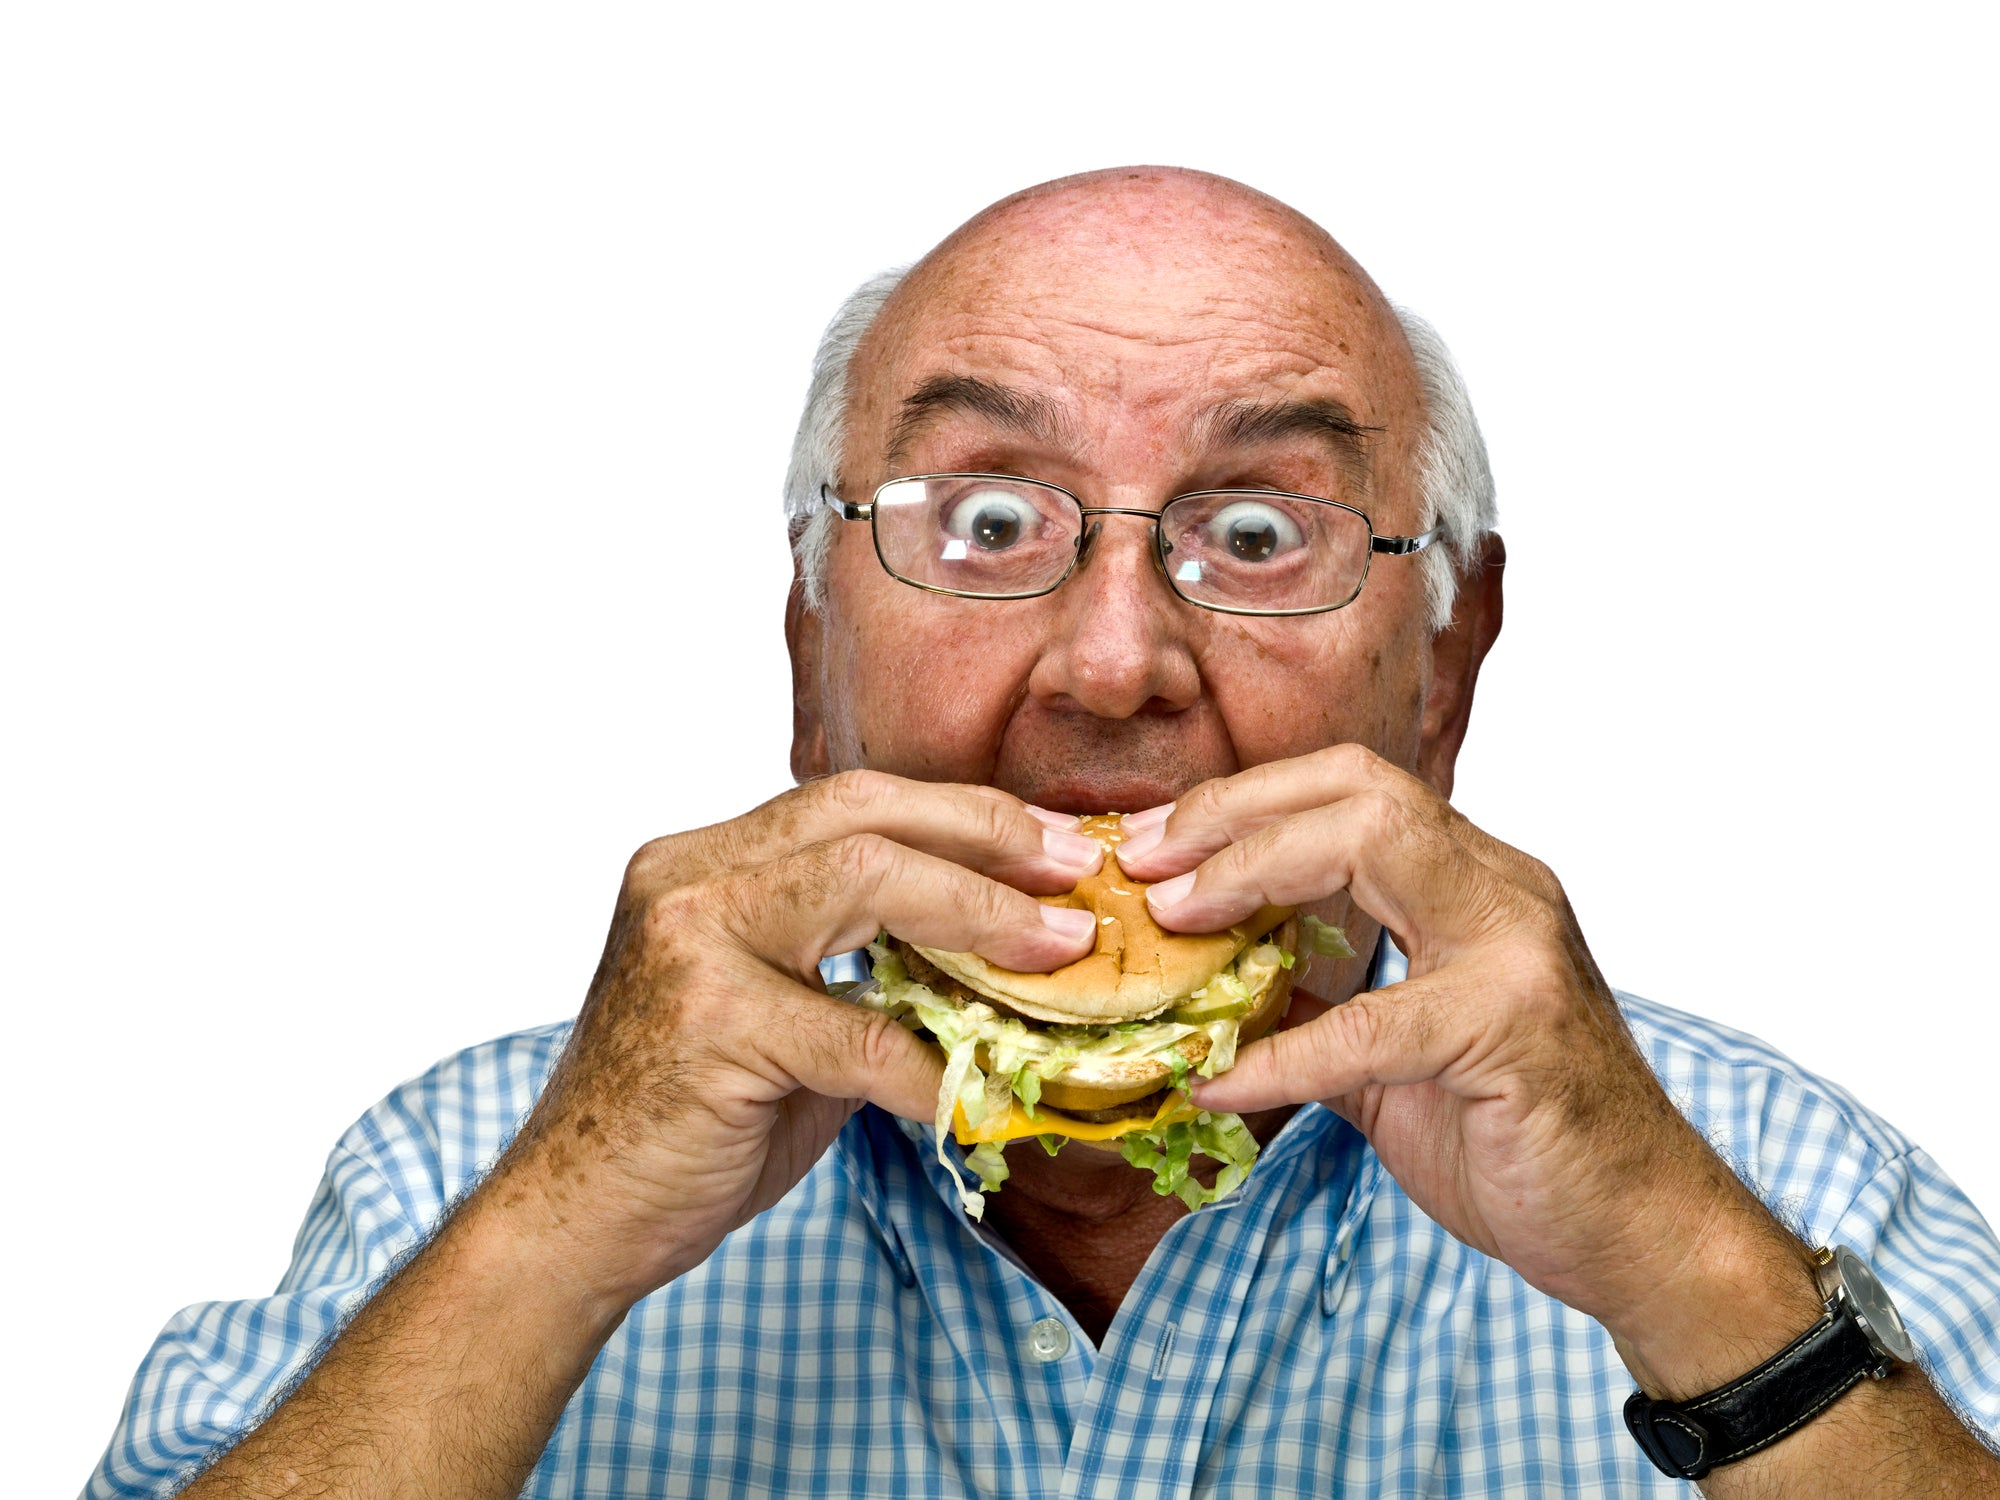 Old man taking a very large bit of a cheese burger filled with bad fats